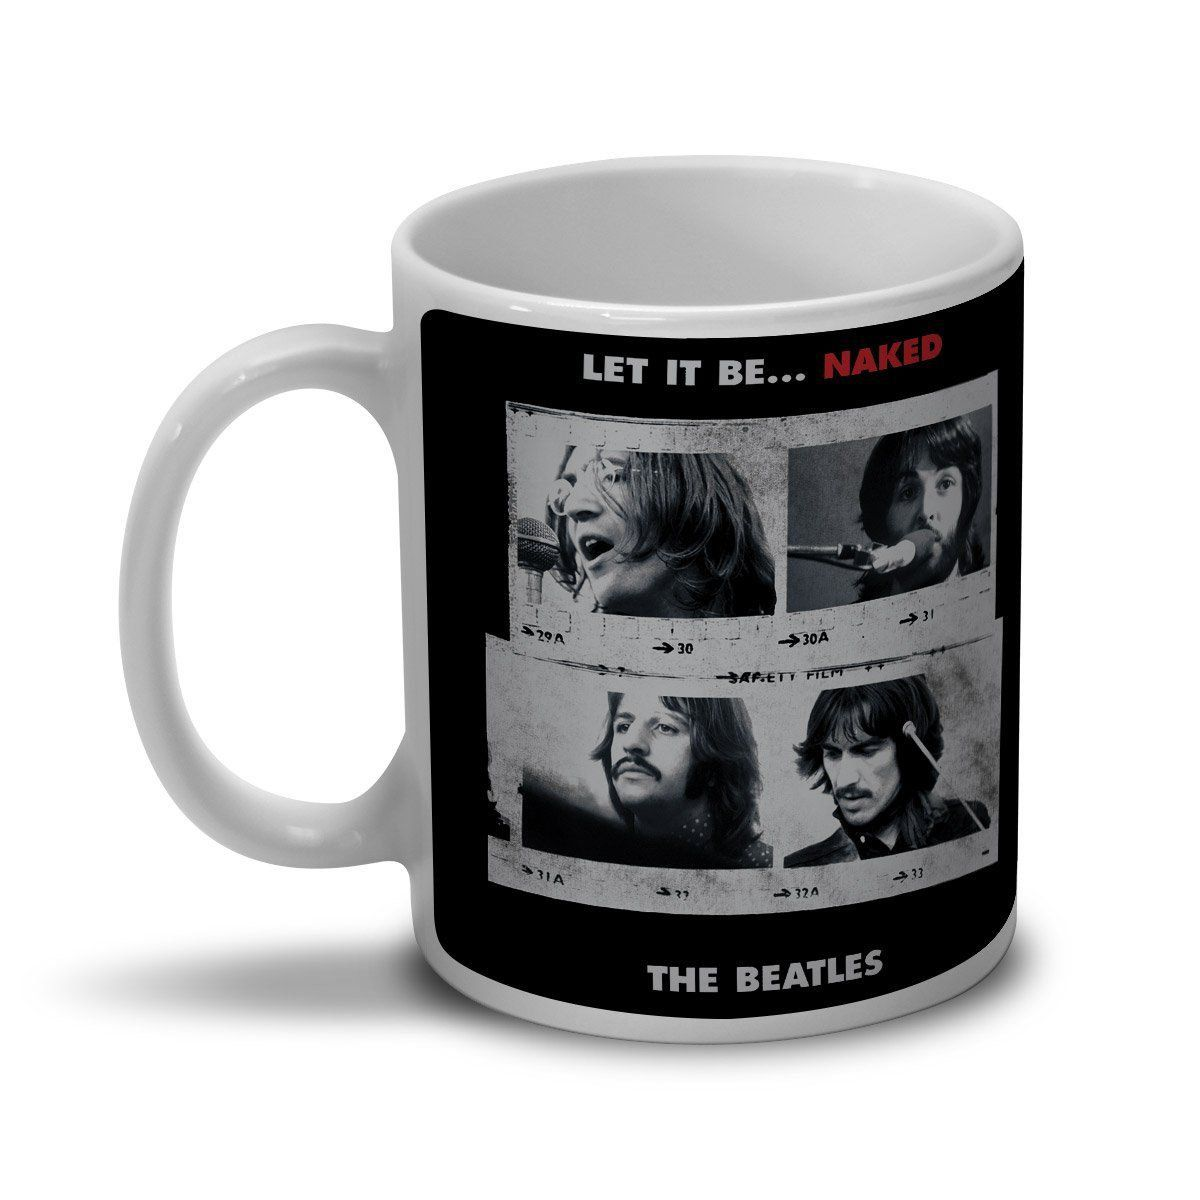 Caneca The Beatles Let It Be... Naked  - bandUP Store Marketplace